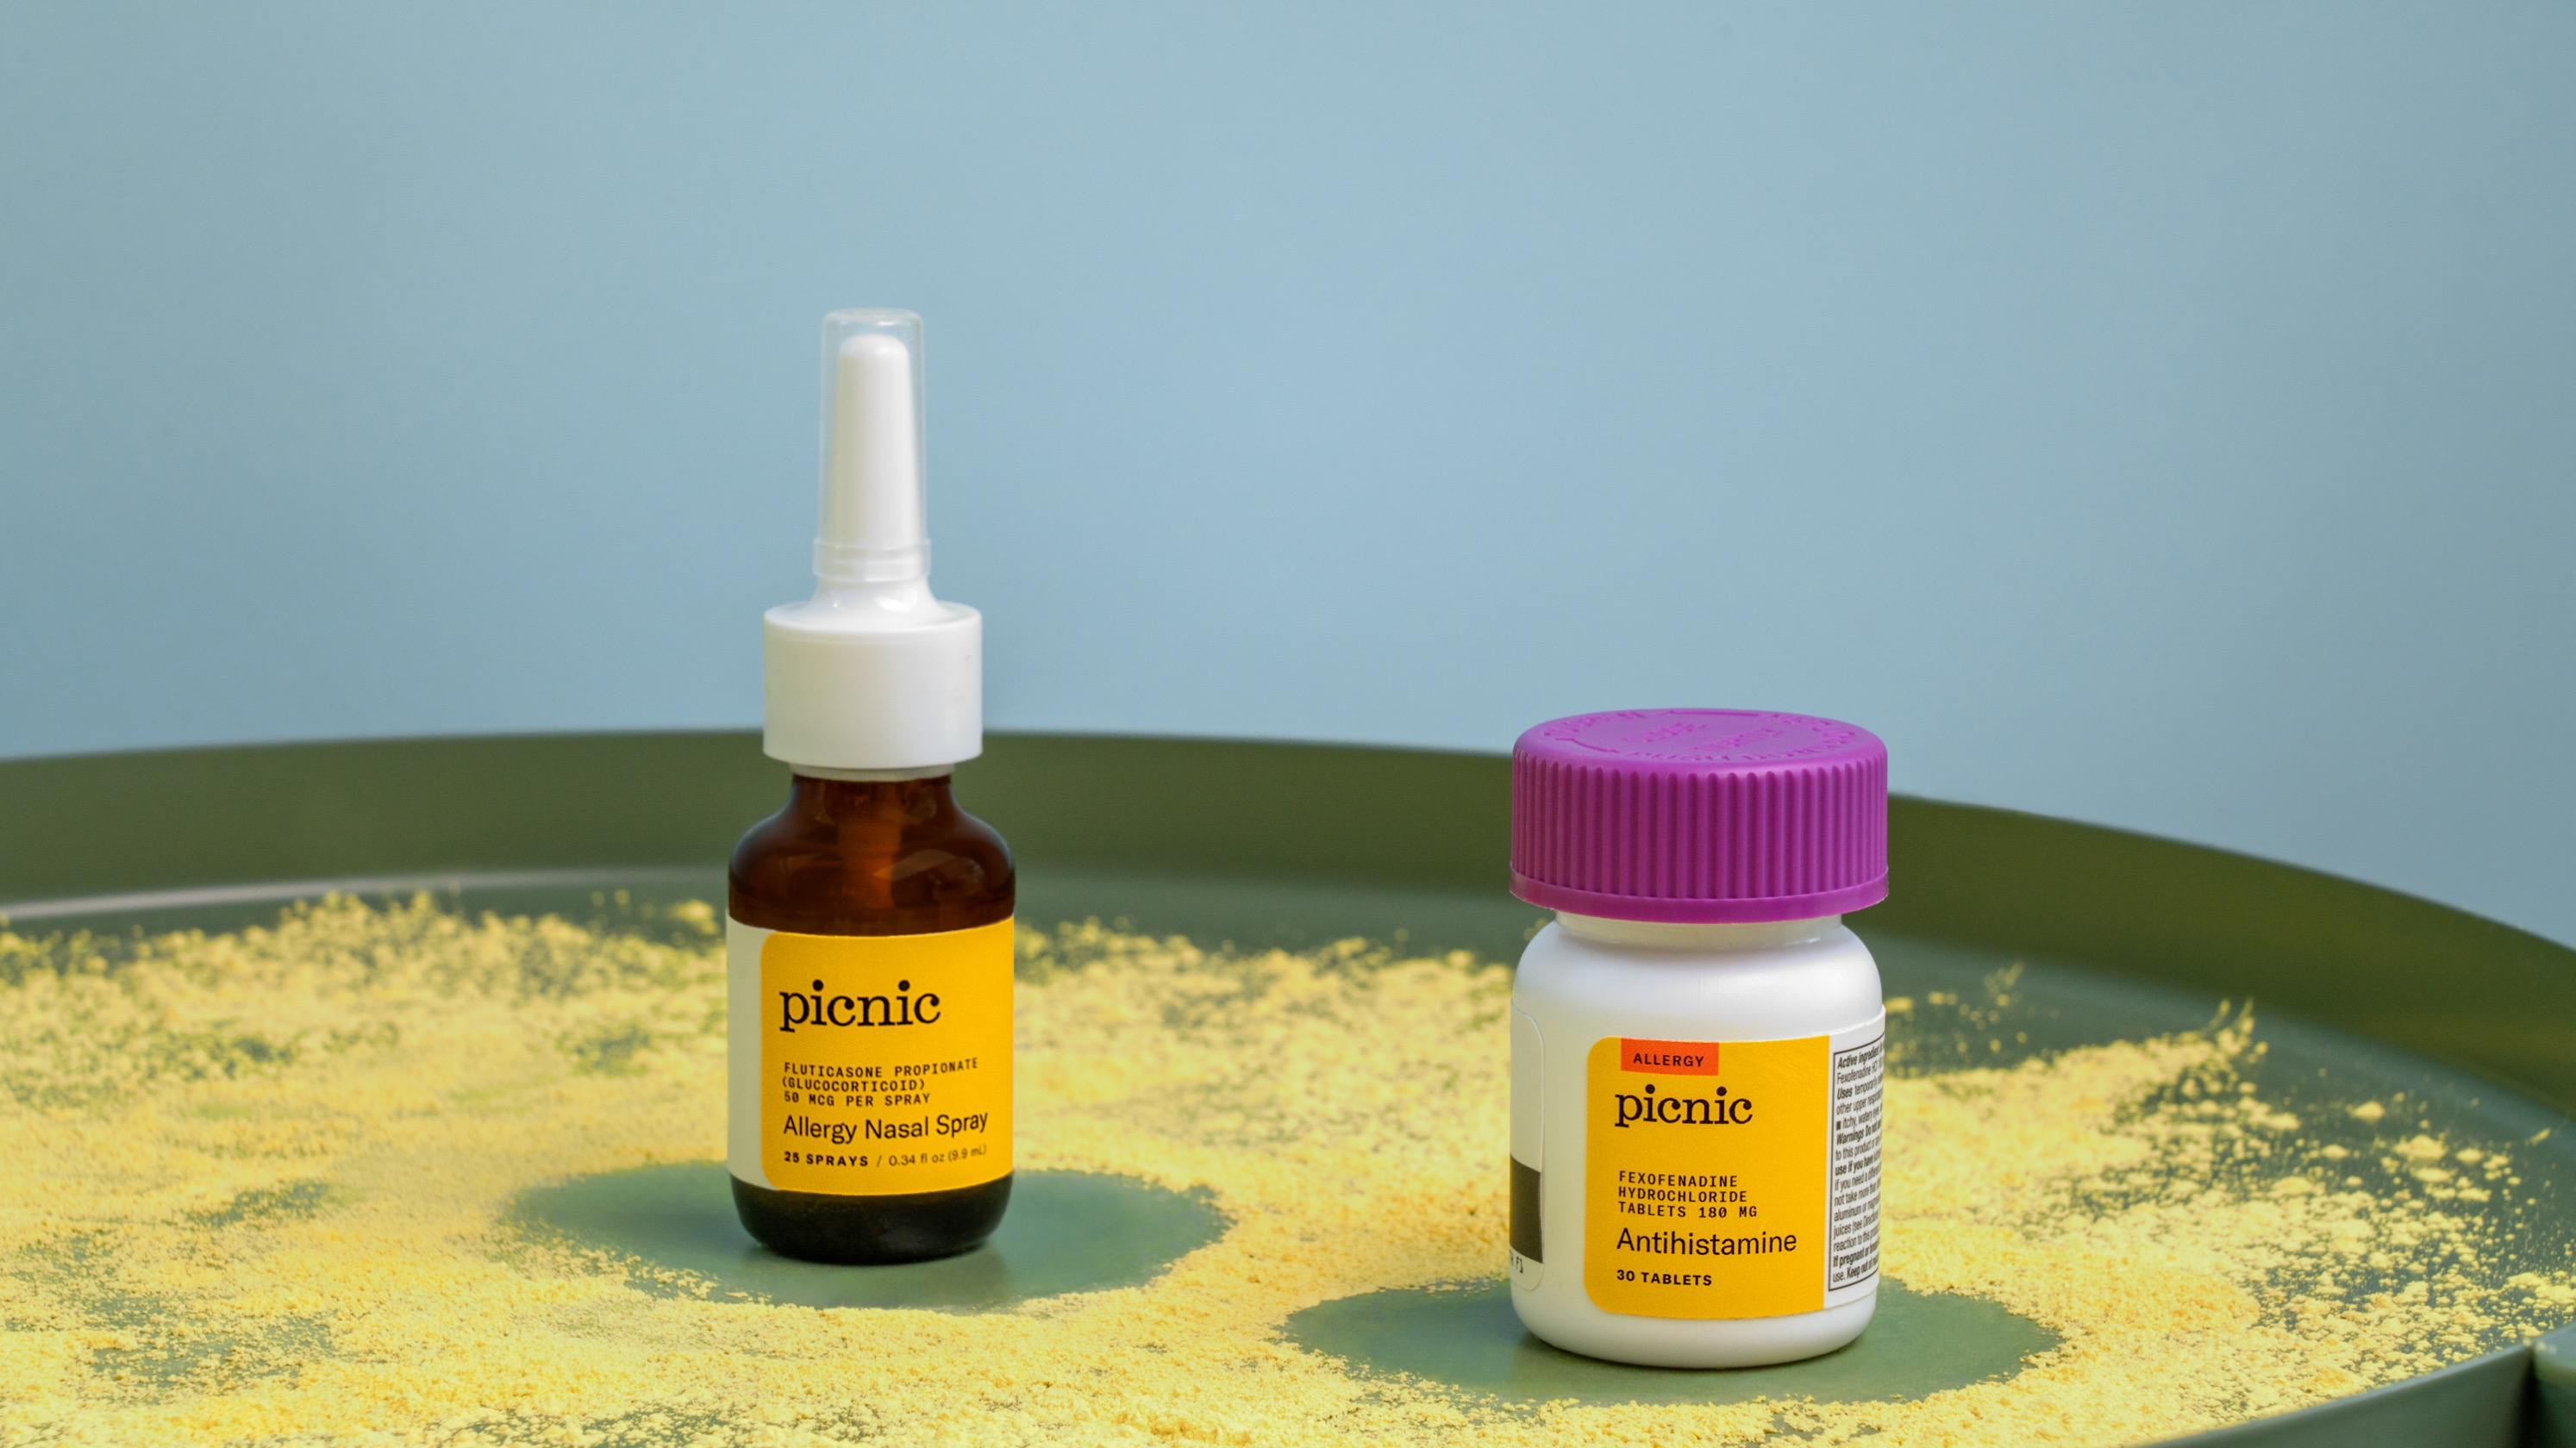 Picnic's over-the-counter nasal spray and a bottle of antihistamines on a tray sprinkled with pollen.